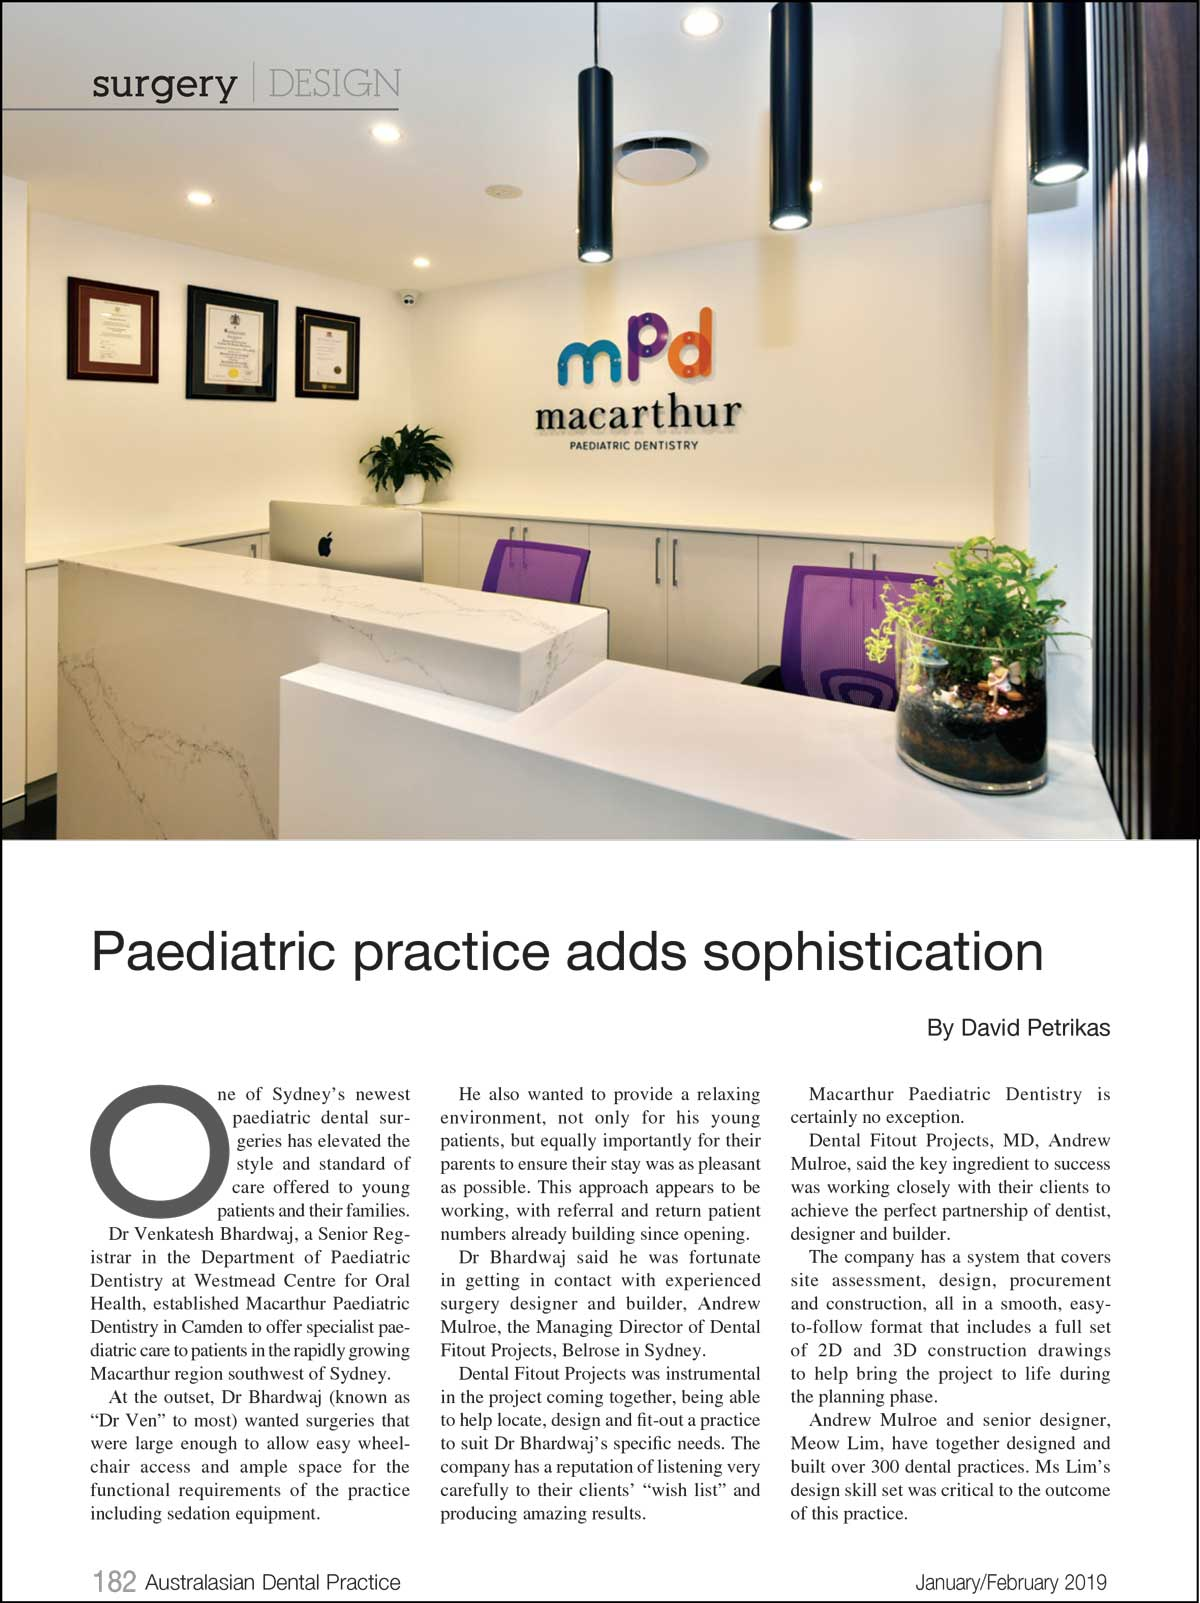 Case Study: Macarthur Paediatric Dentistry